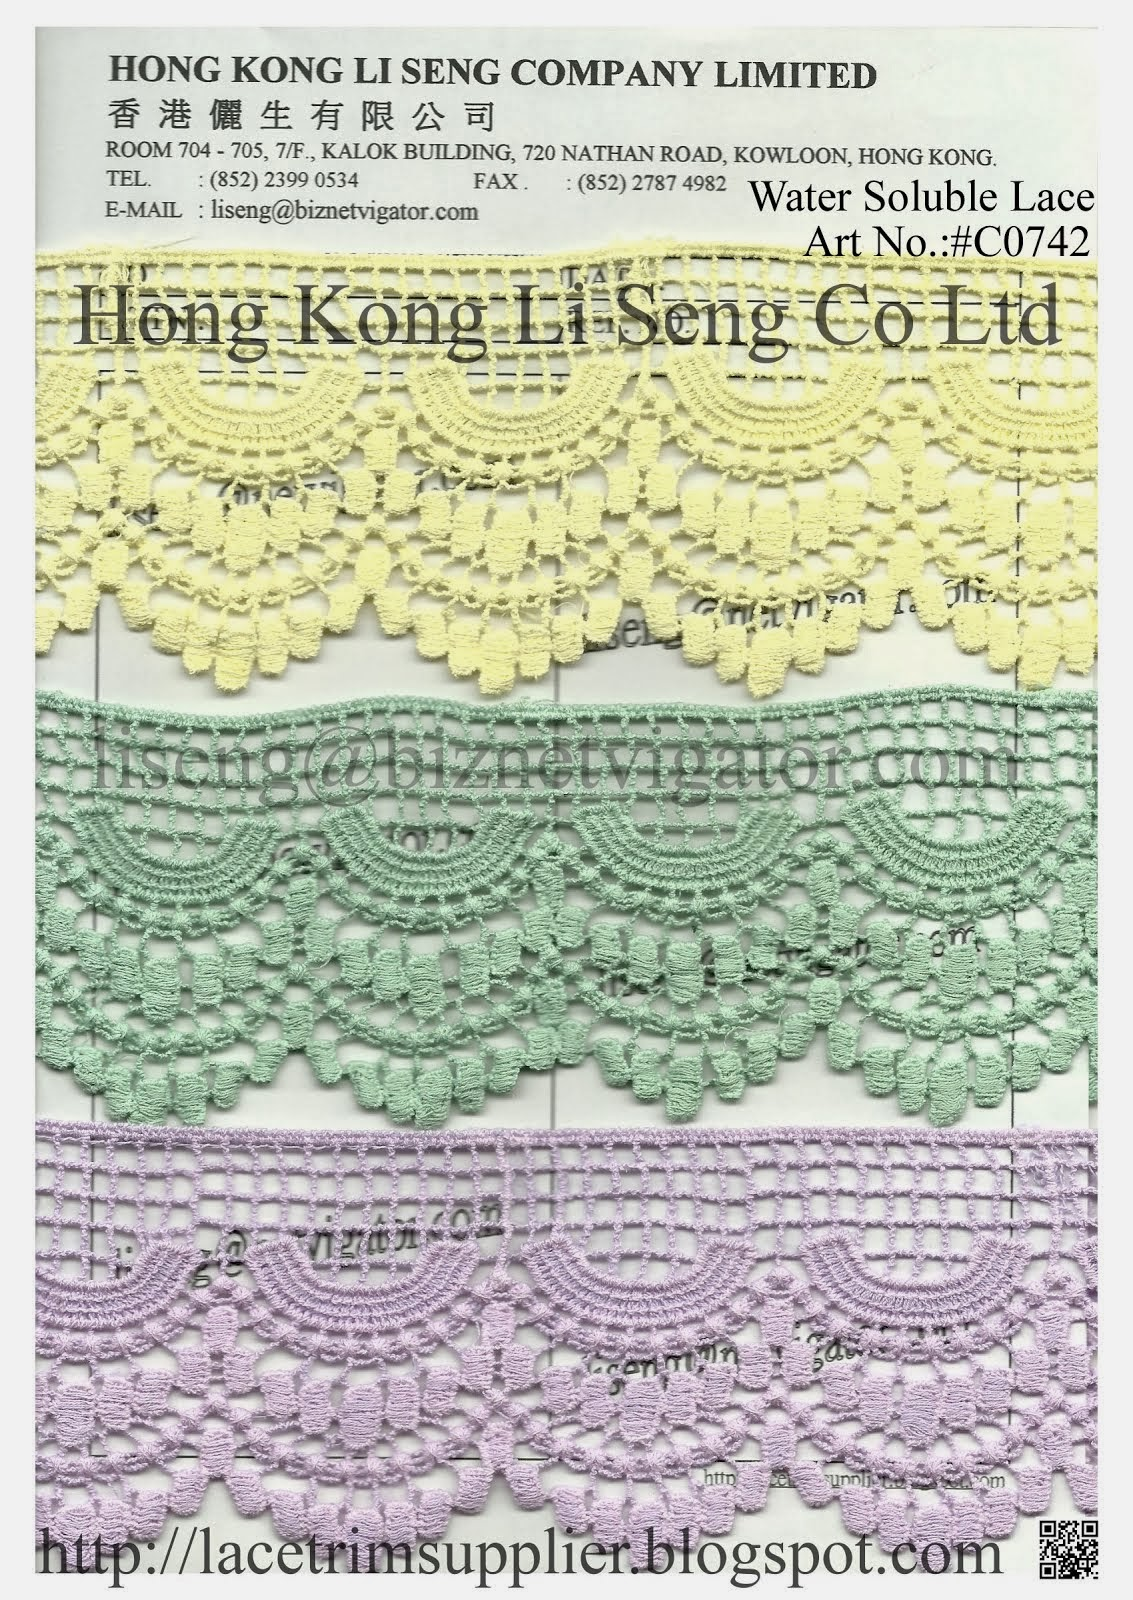 Embroidered Cotton Lace Trims Manufacturer Wholesale Supplier - Hong Kong Li Seng Co Ltd